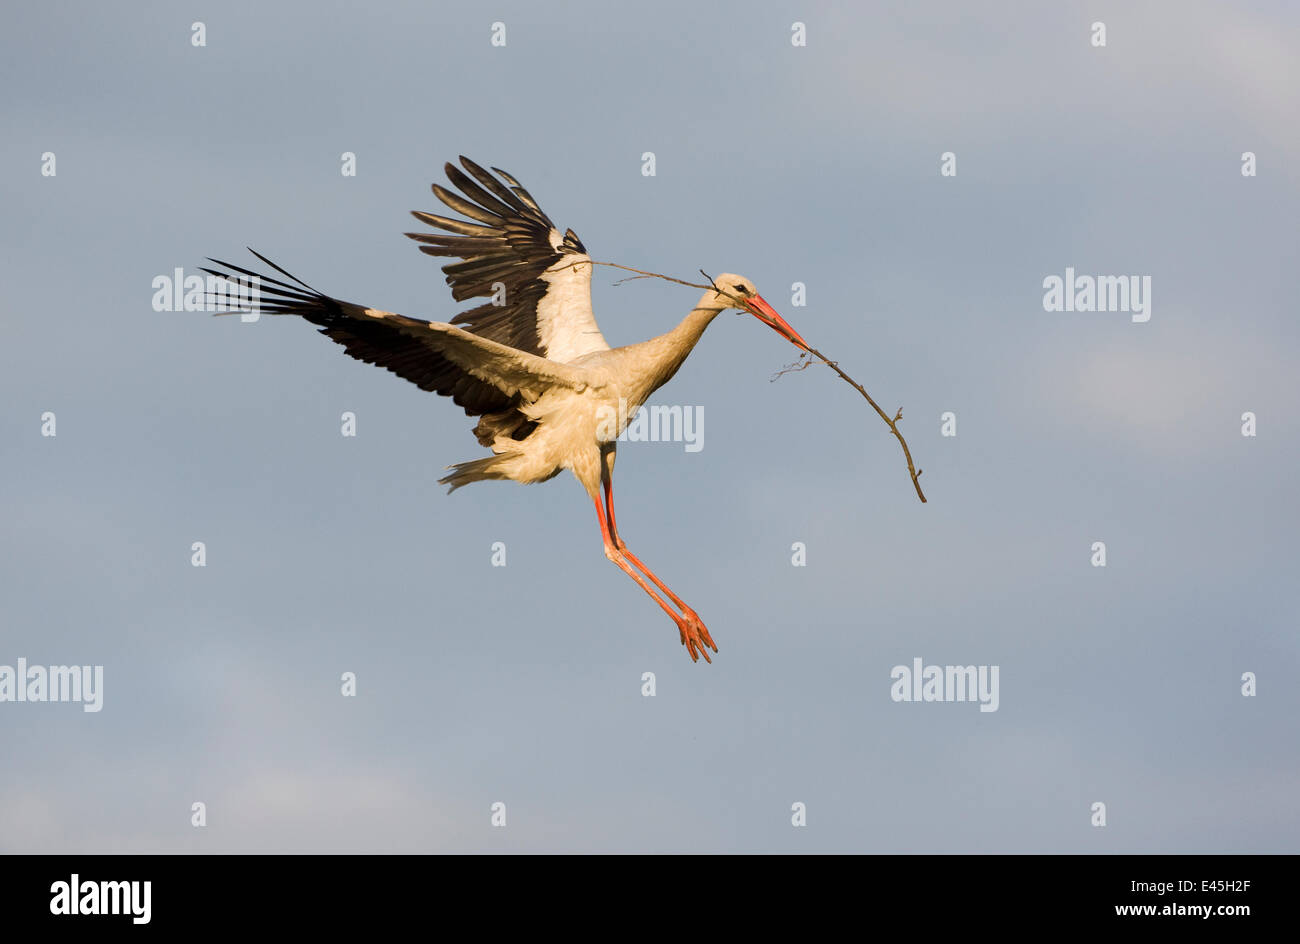 White stork (Ciconia ciconia) flying to nest with nesting material, Rusne, Nemunas Regional Park, Lithuania, June Stock Photo